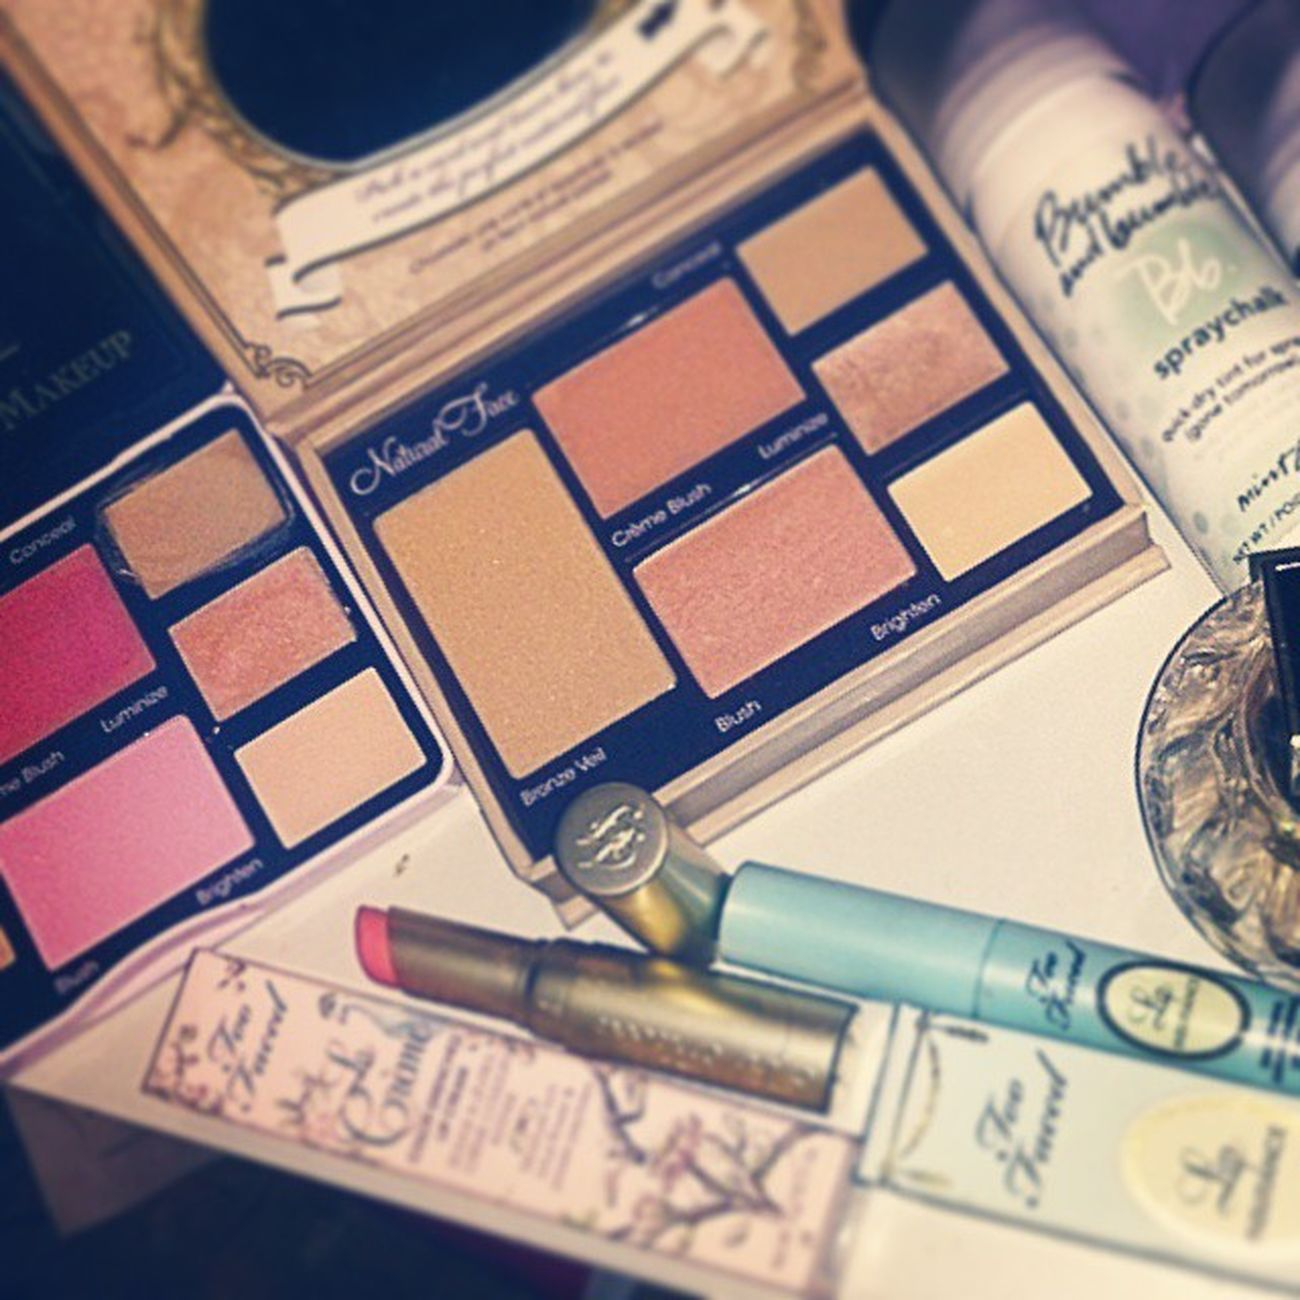 TooFaced Bumbleandbumble Jimmychoo SprayChalk Mint Lavendel Lipinsurance LaCream MarshmallowBunny Freshandflawlesspalette Naturalradiancekit Mu @TooFaced Order via Unitedkingdom, B&B Chalk 2, jimmy Choo Signature Fragrance via Douglas Germany